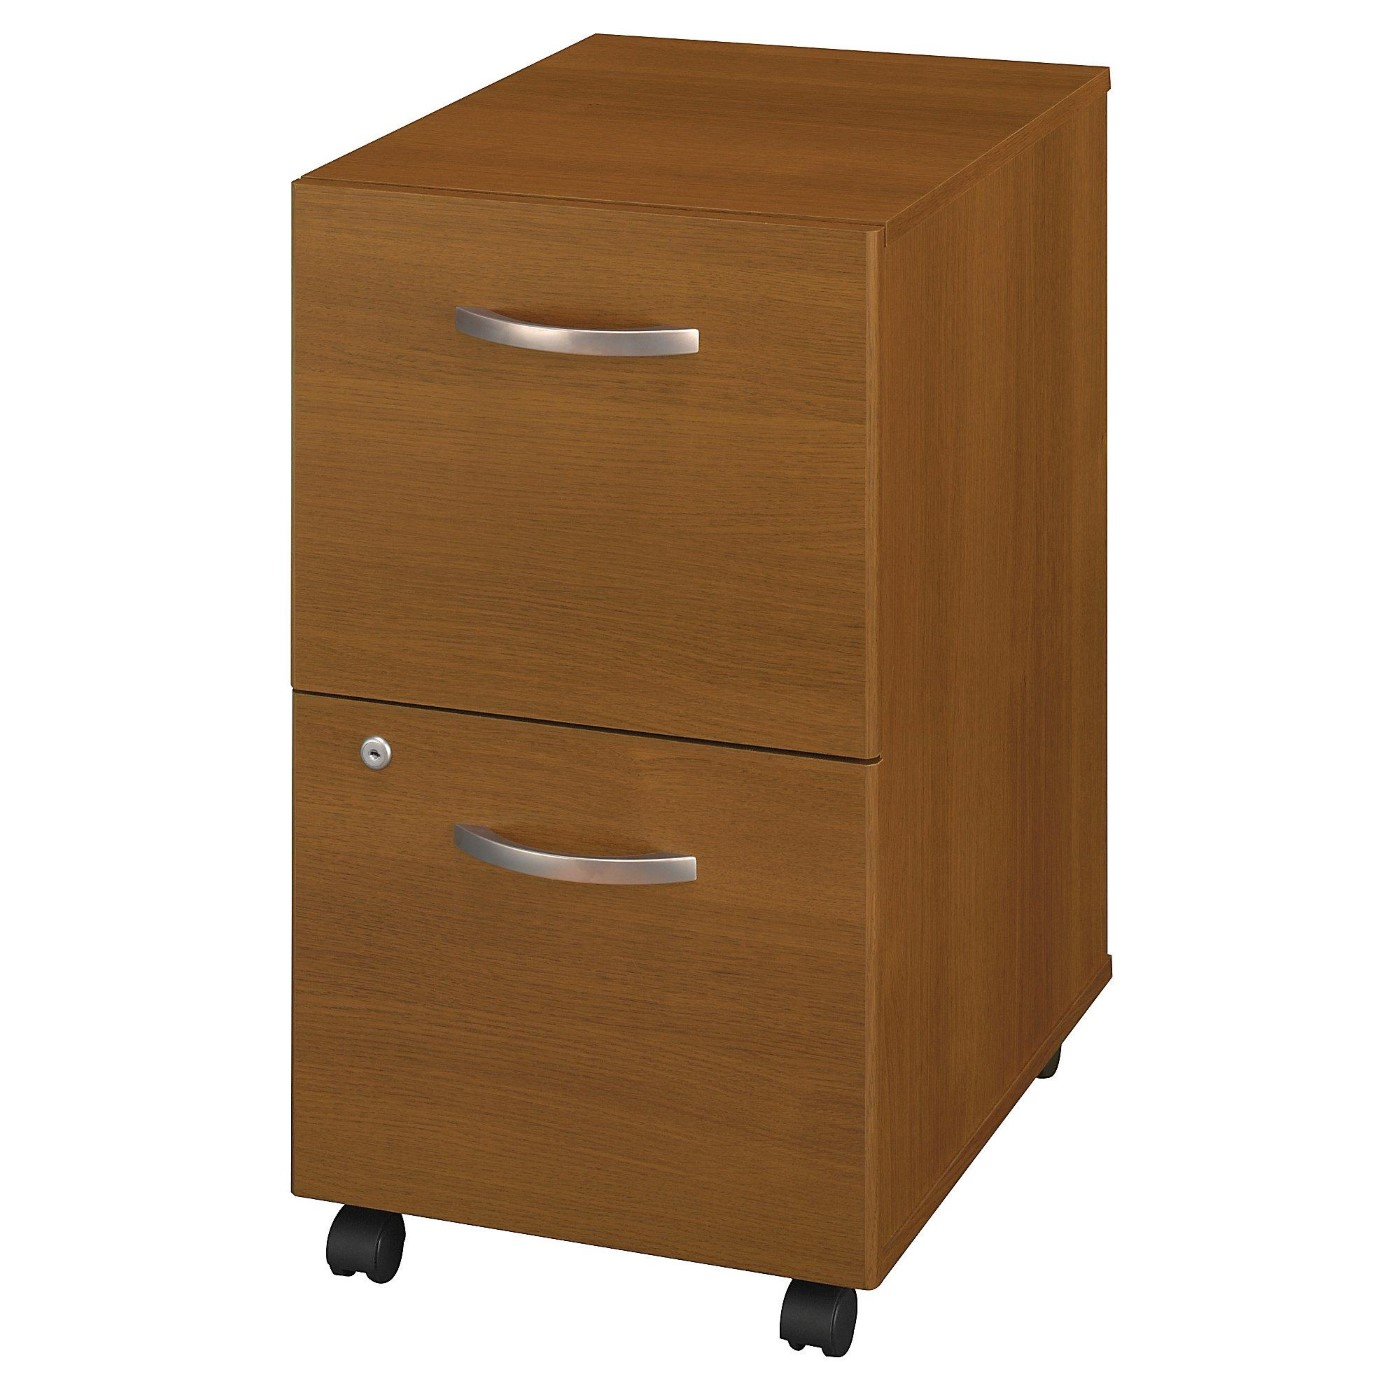 <font color=#c60><b>BUSH BUSINESS FURNITURE SERIES C 2 DRAWER MOBILE FILE CABINET. FREE SHIPPING</font></b>